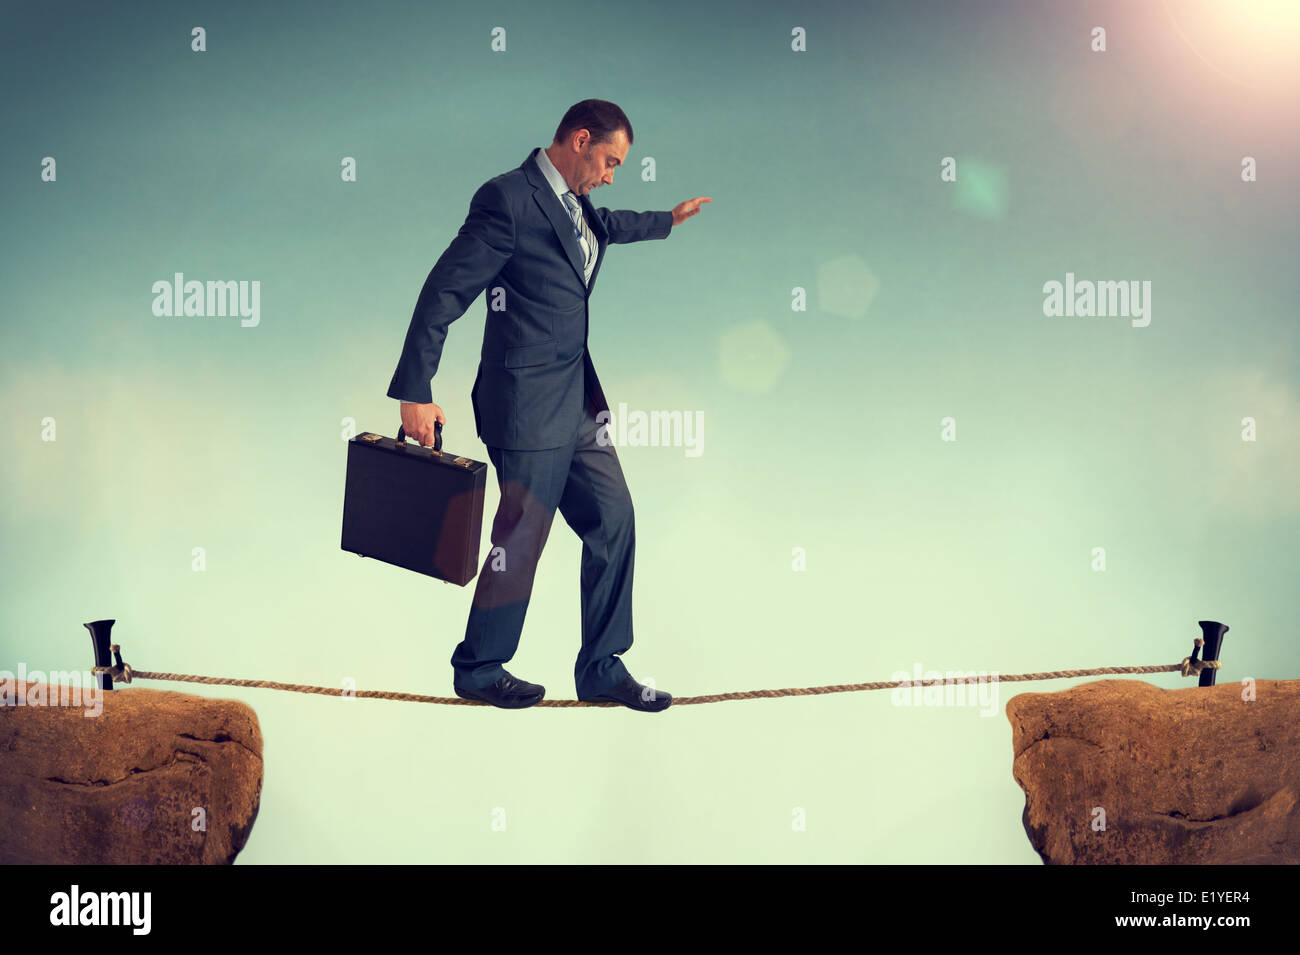 businessman predicament balancing or walking a tightrope or highwire. business concept of challenge, risk, danger, - Stock Image